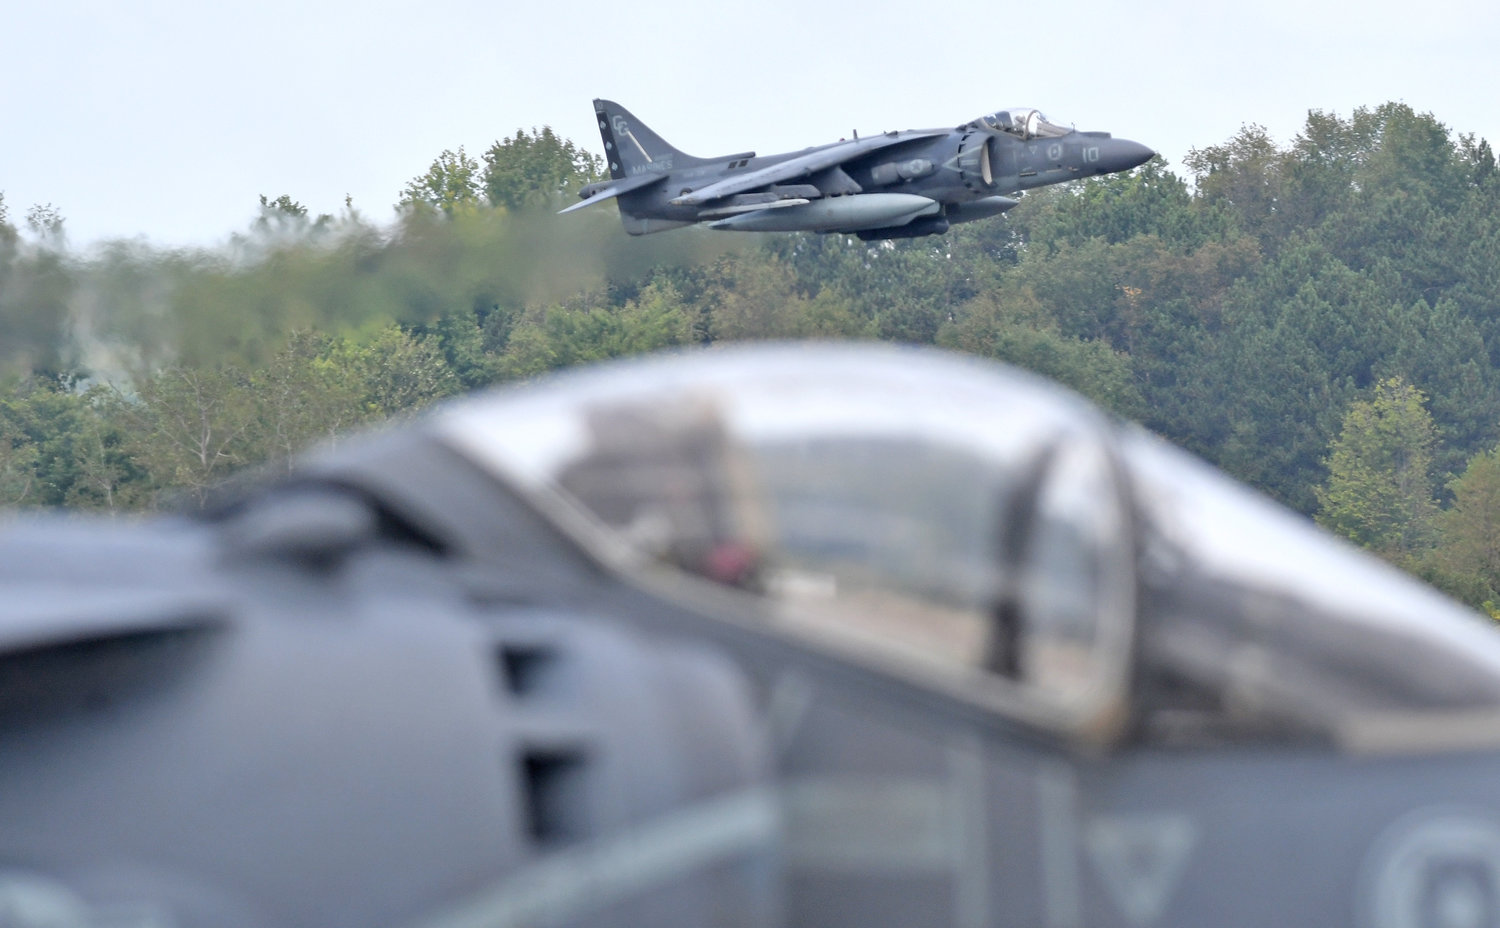 One of the two Harriers at Griffiss takes off with the cowl and cockpit of the other Harrier in the foreground.